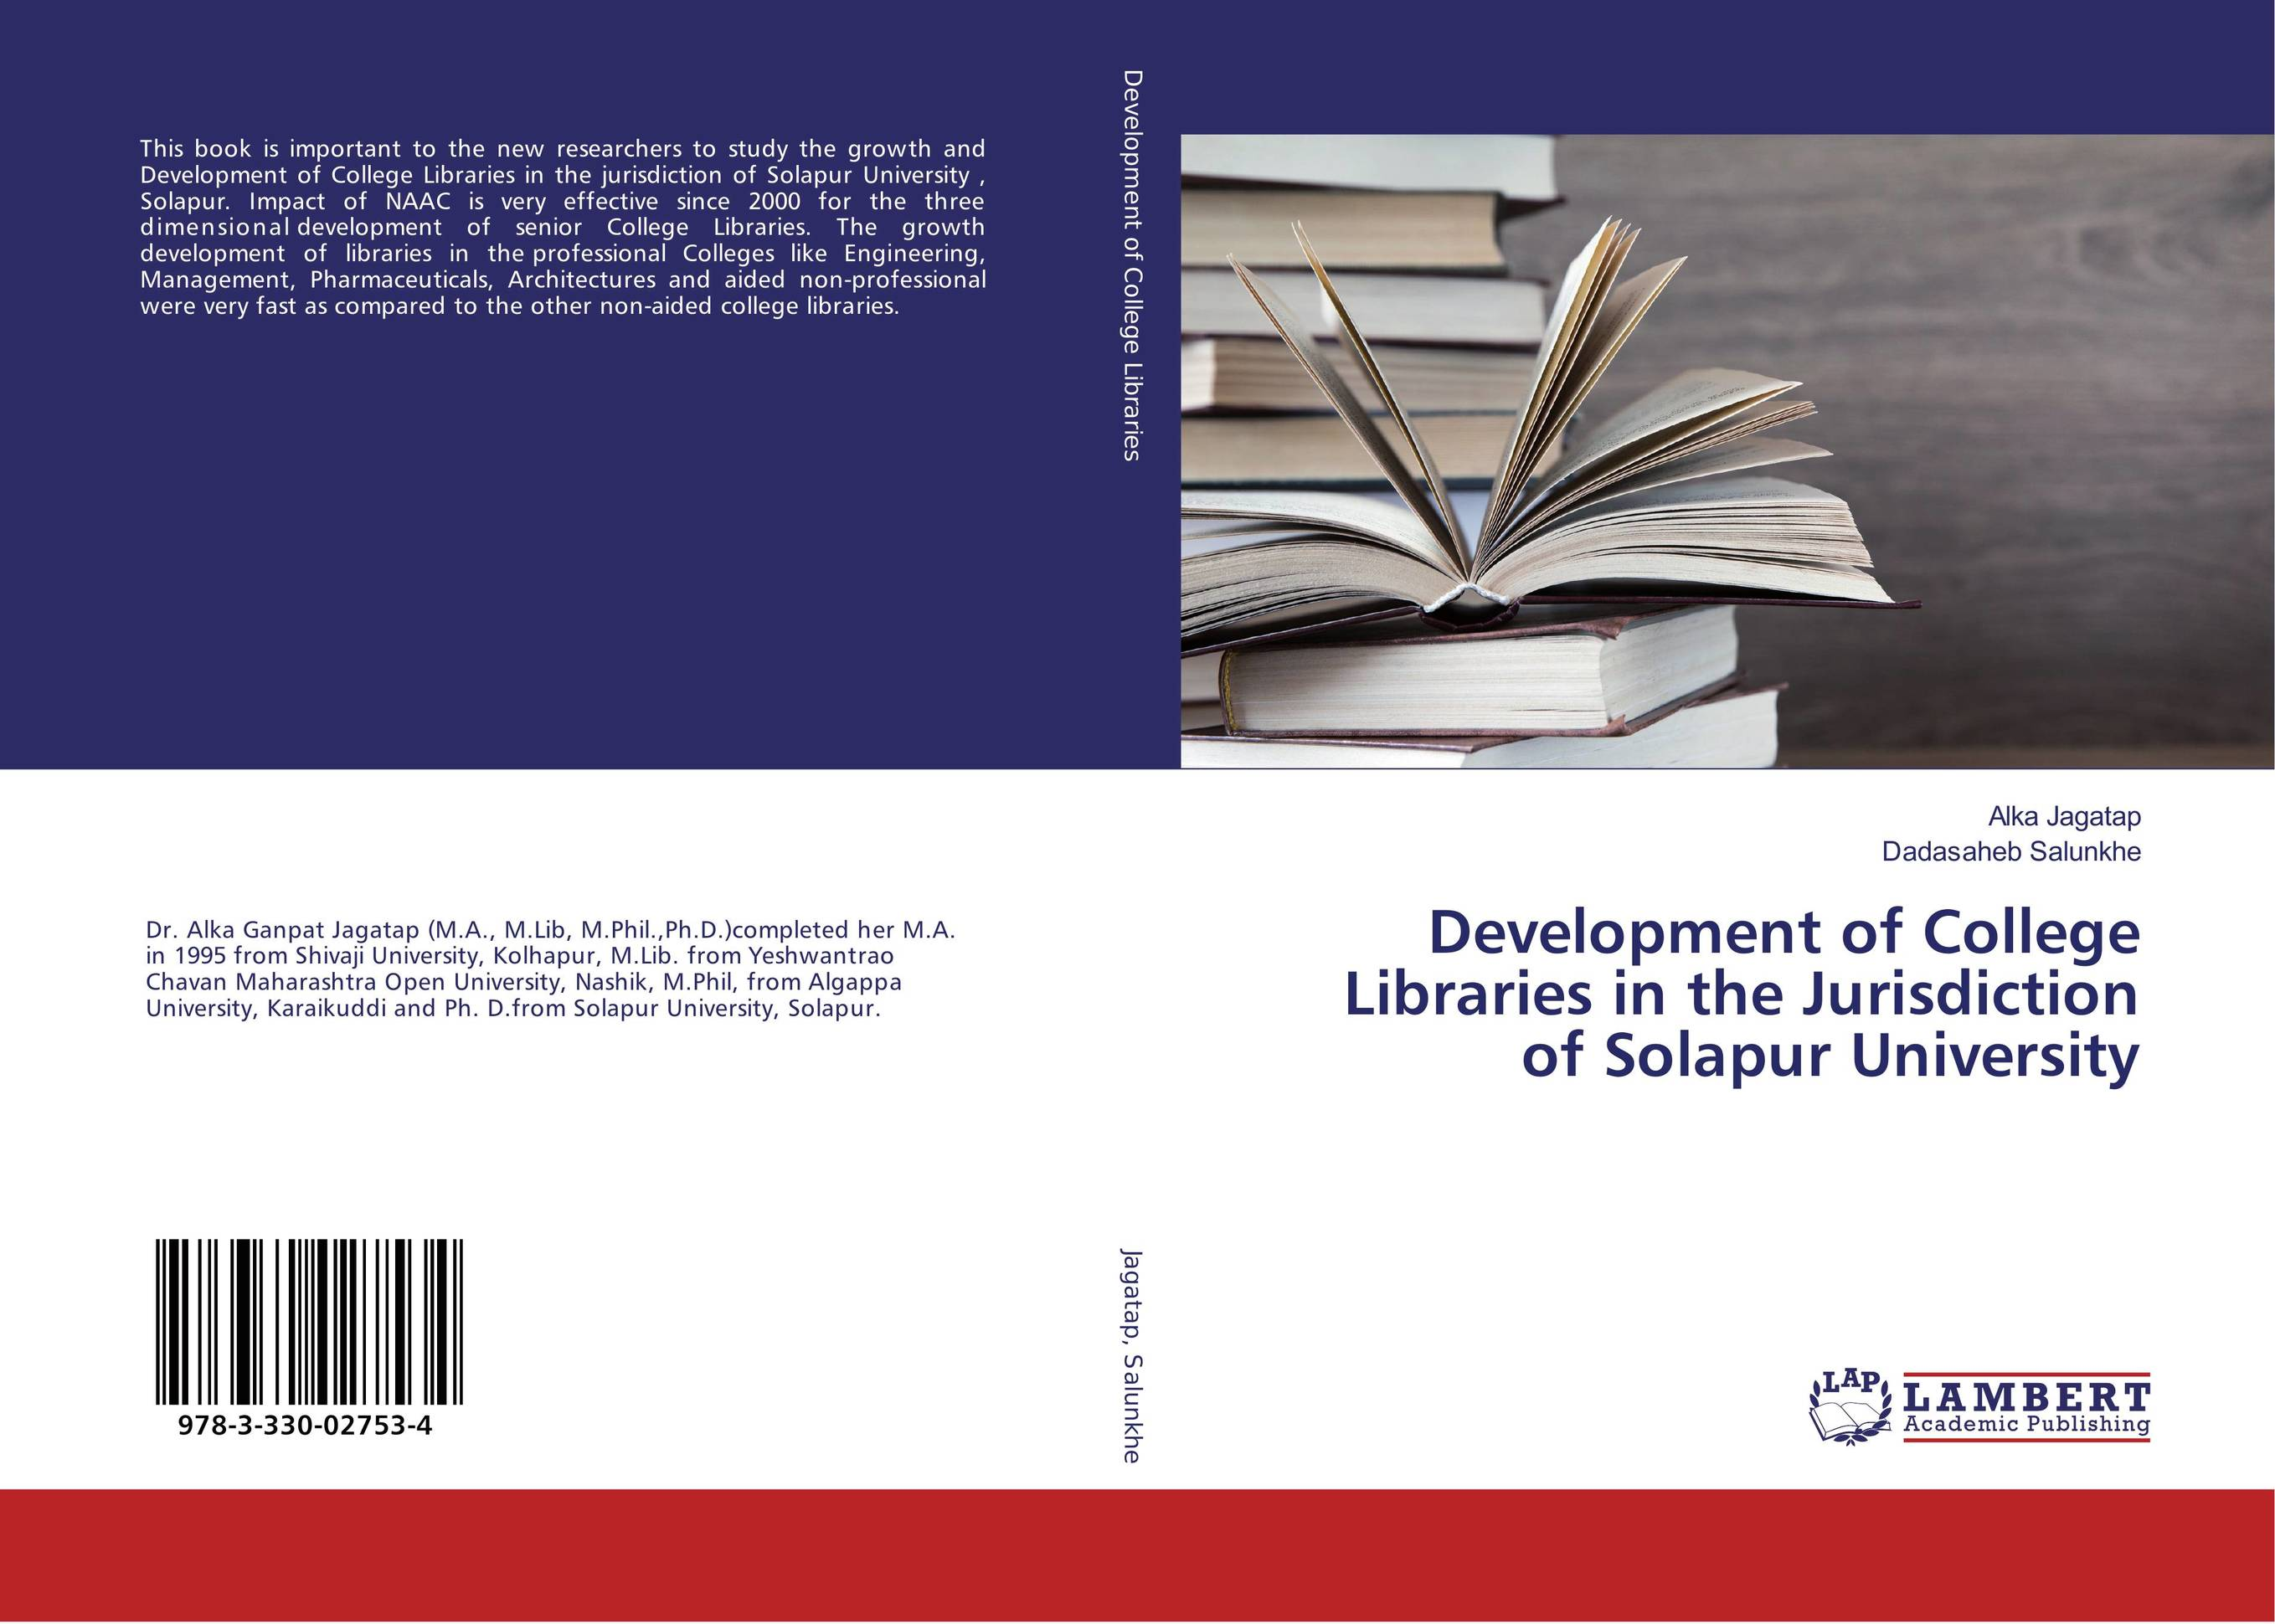 9783330027534 Development of College Libraries in the Jurisdictiur University